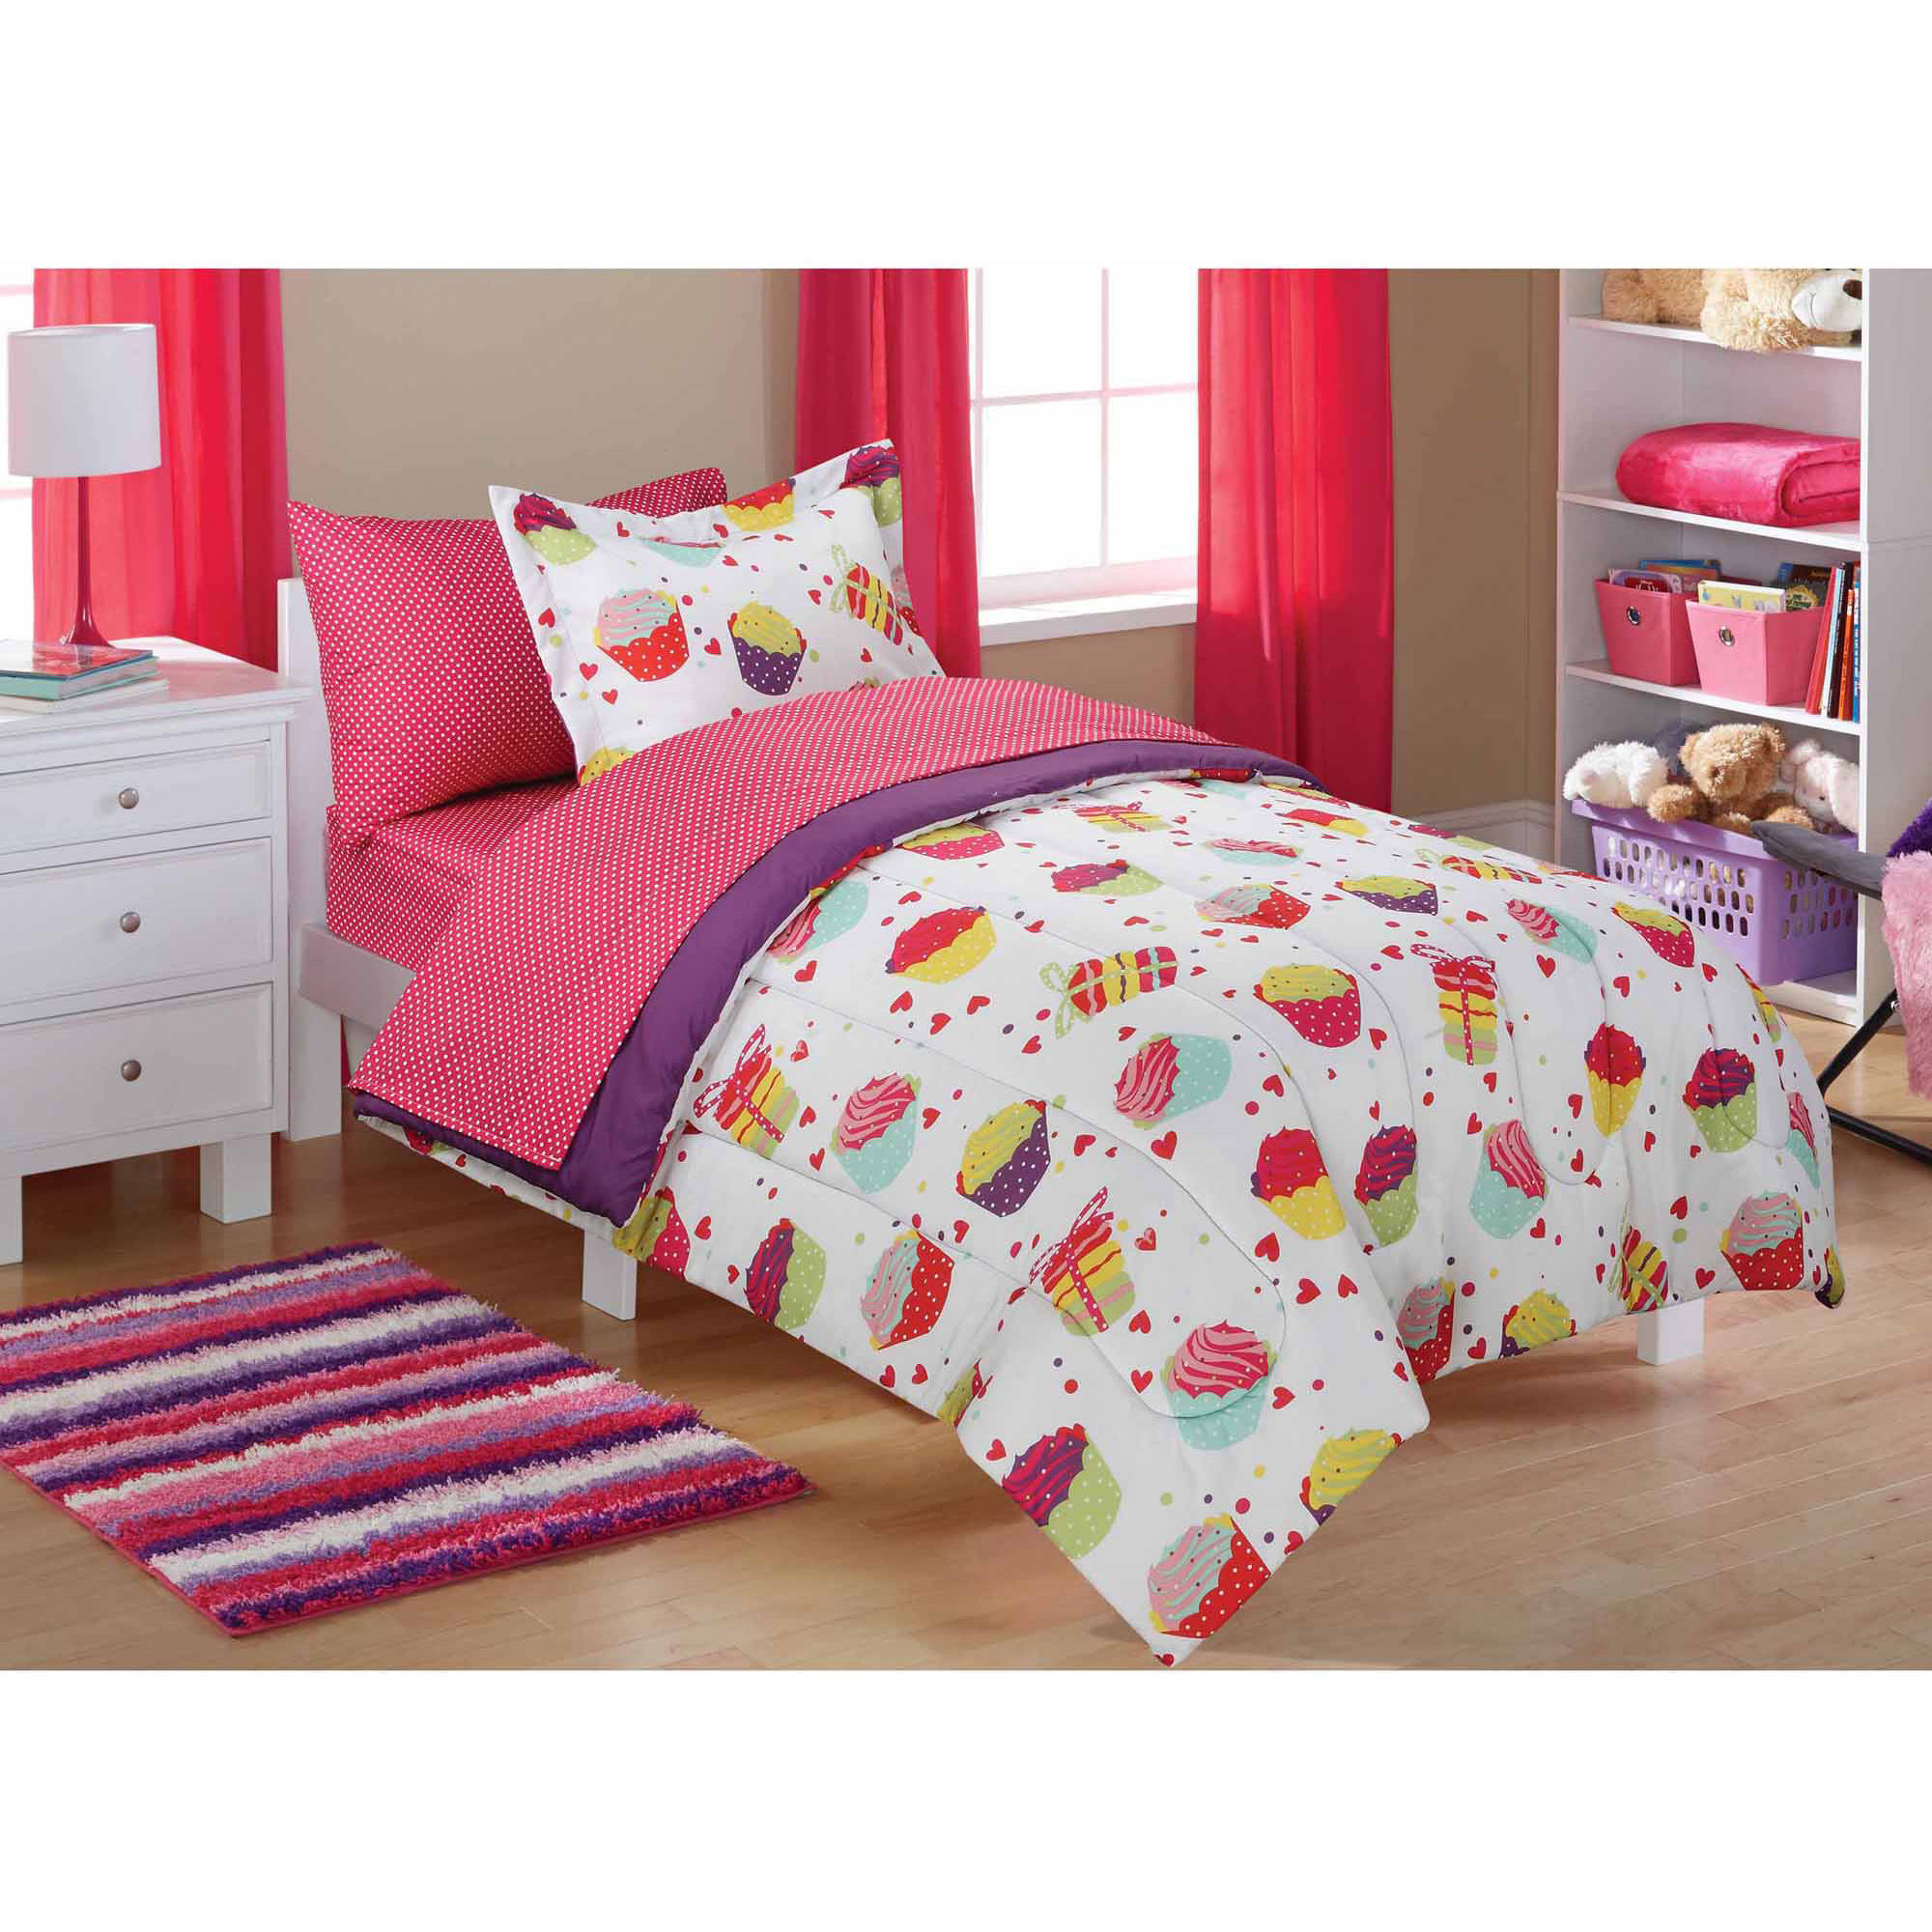 Mainstays Kids Cupcake Coordinated Bed In A Bag Walmart Com Walmart Com